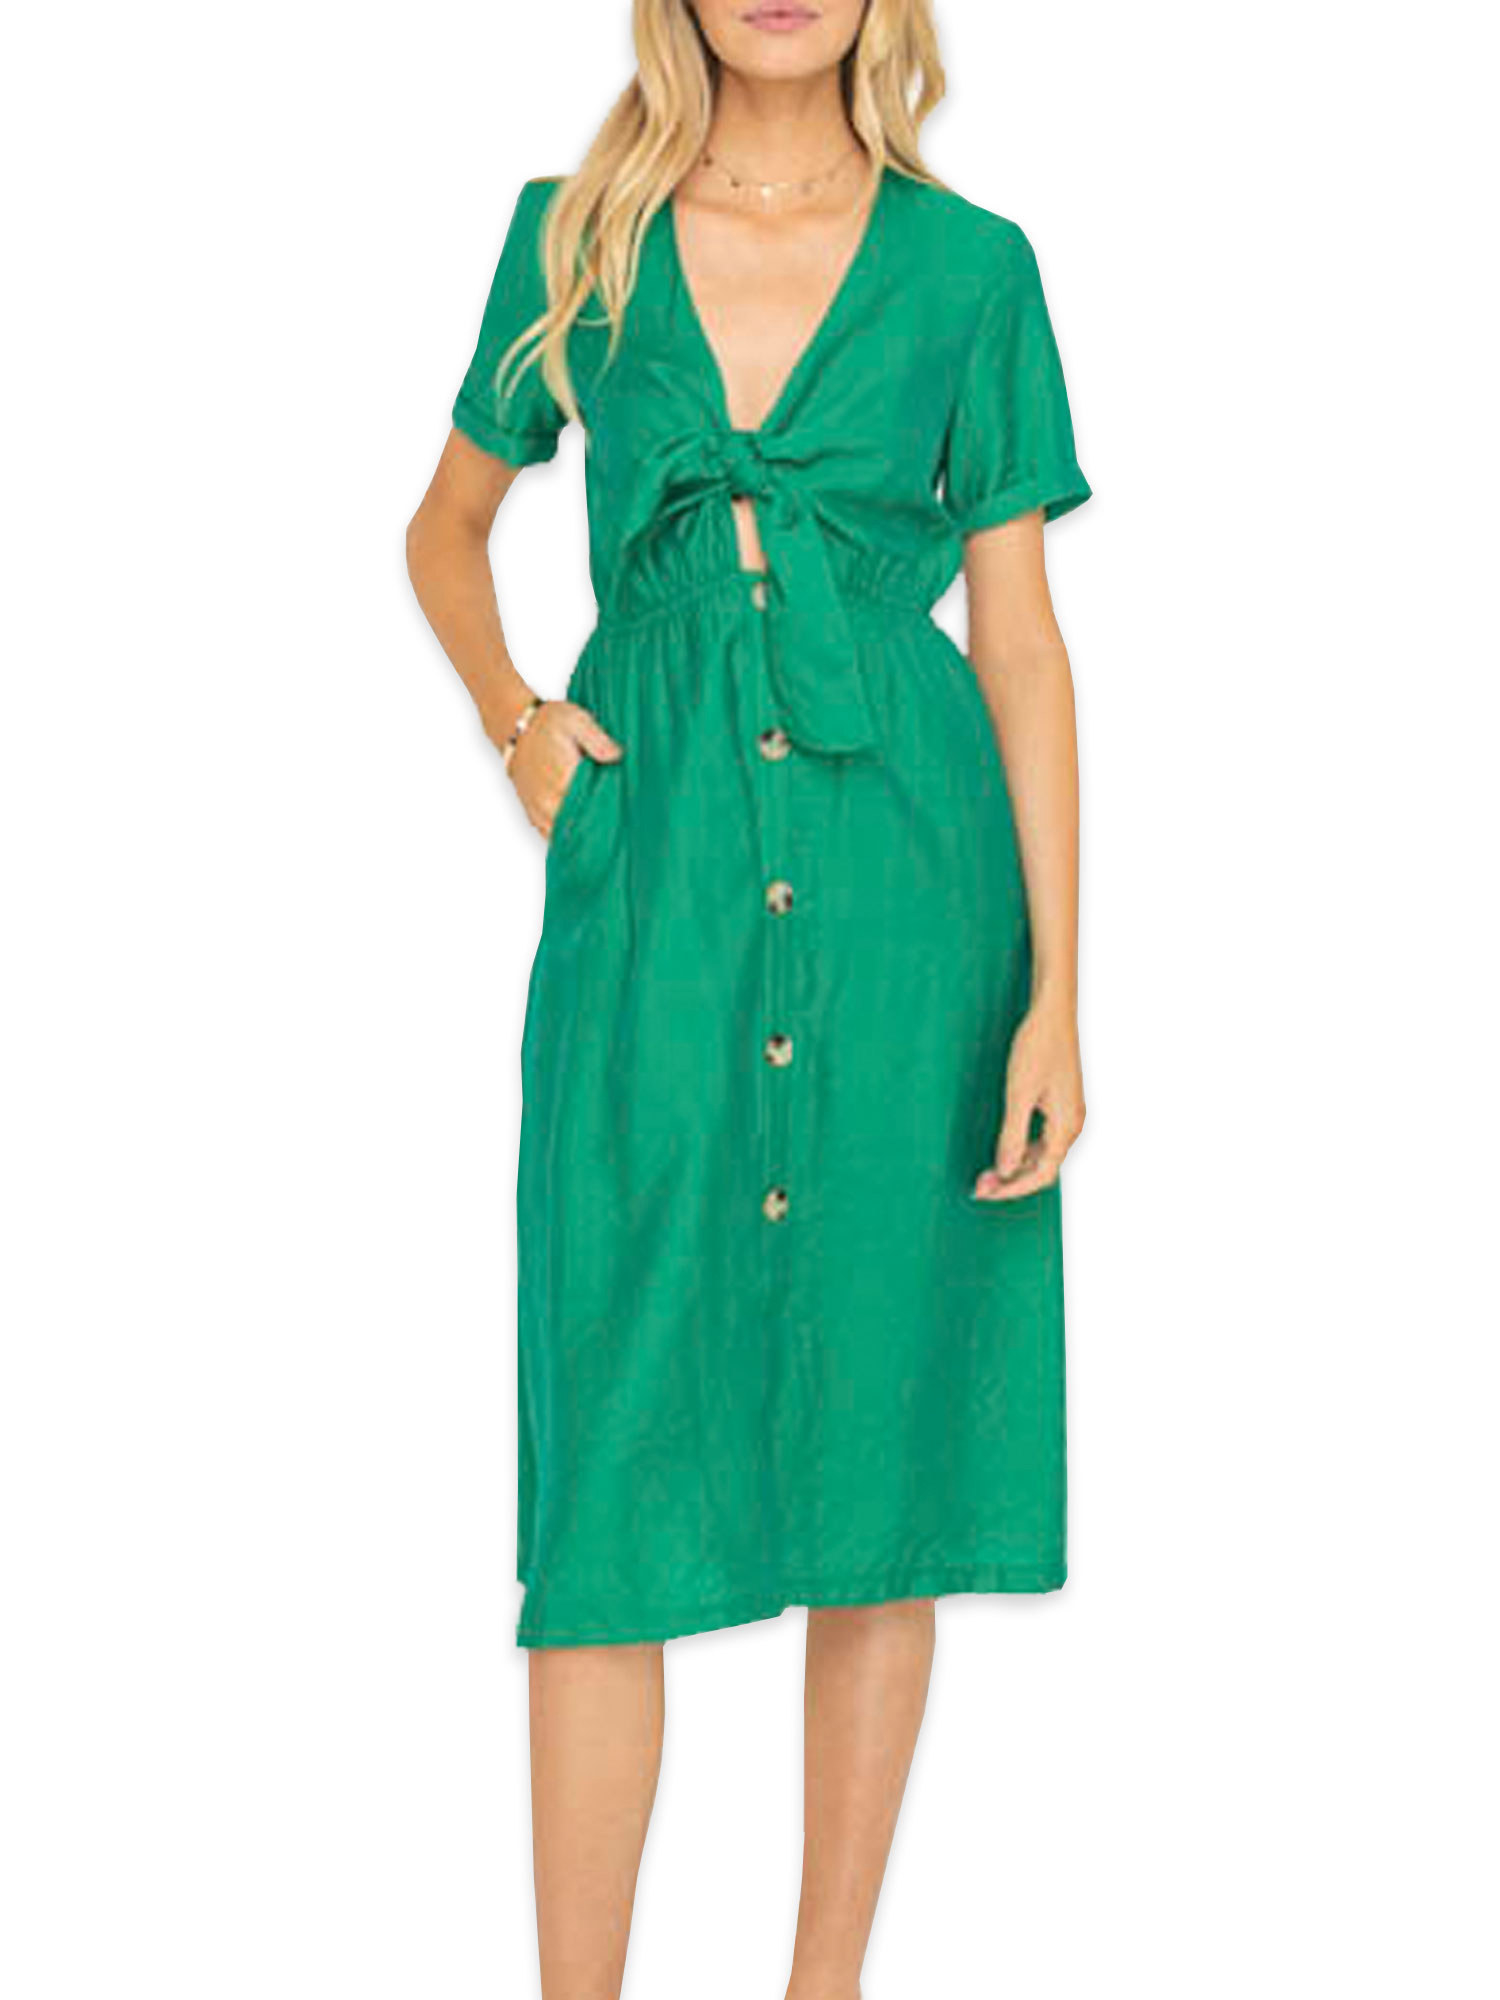 a model in the green tshirt button down dress